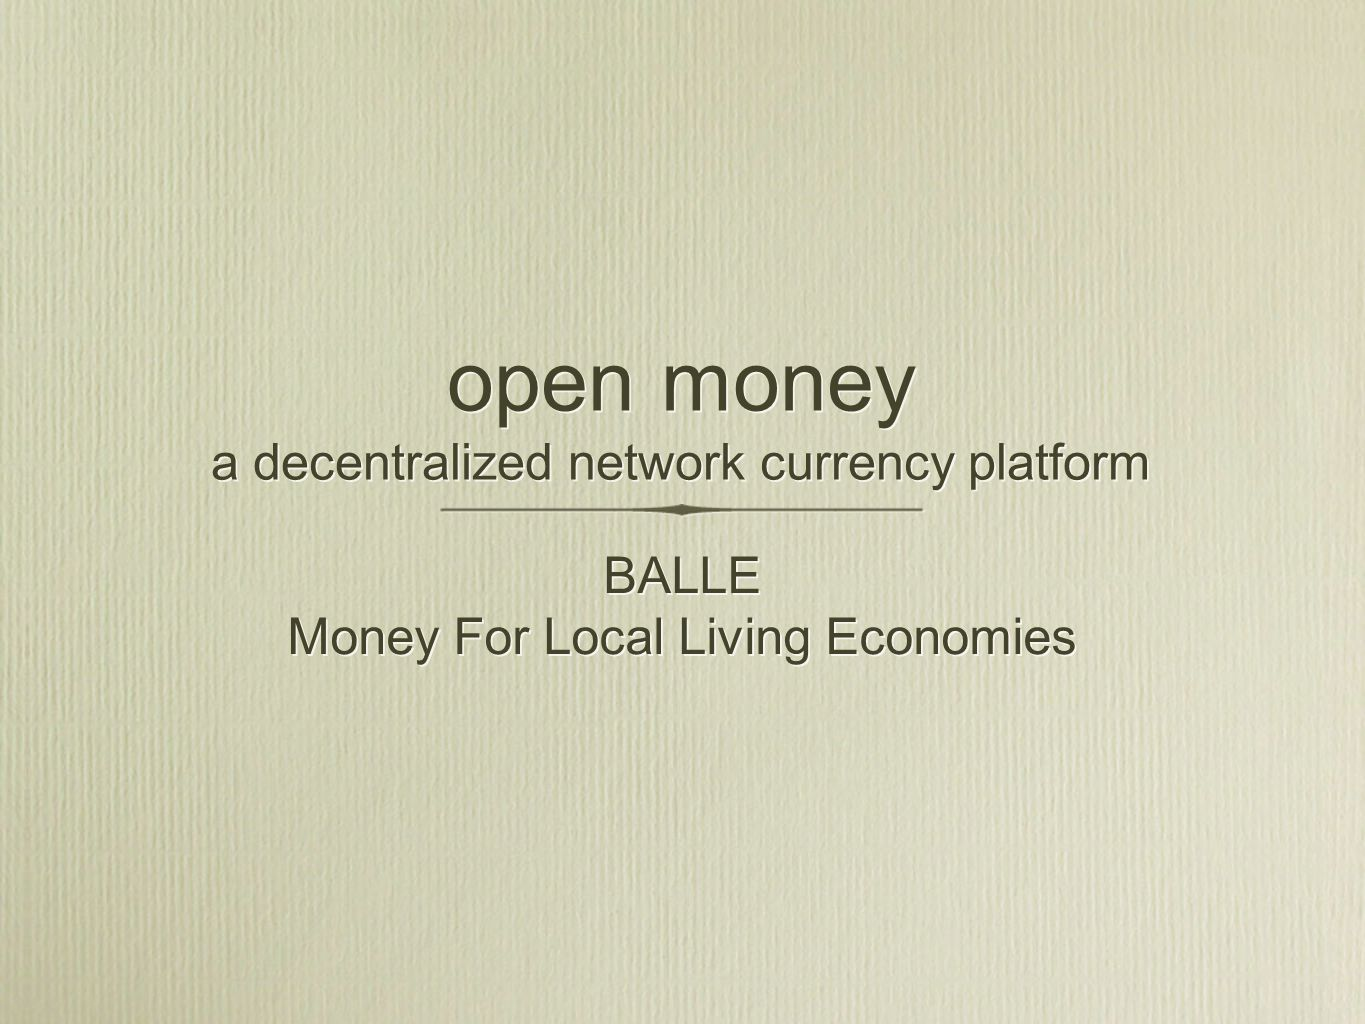 open money Technical Layer: open money servers Currency Layer Burlington Shoppers Vermont Farmers Lake Champlain Water District